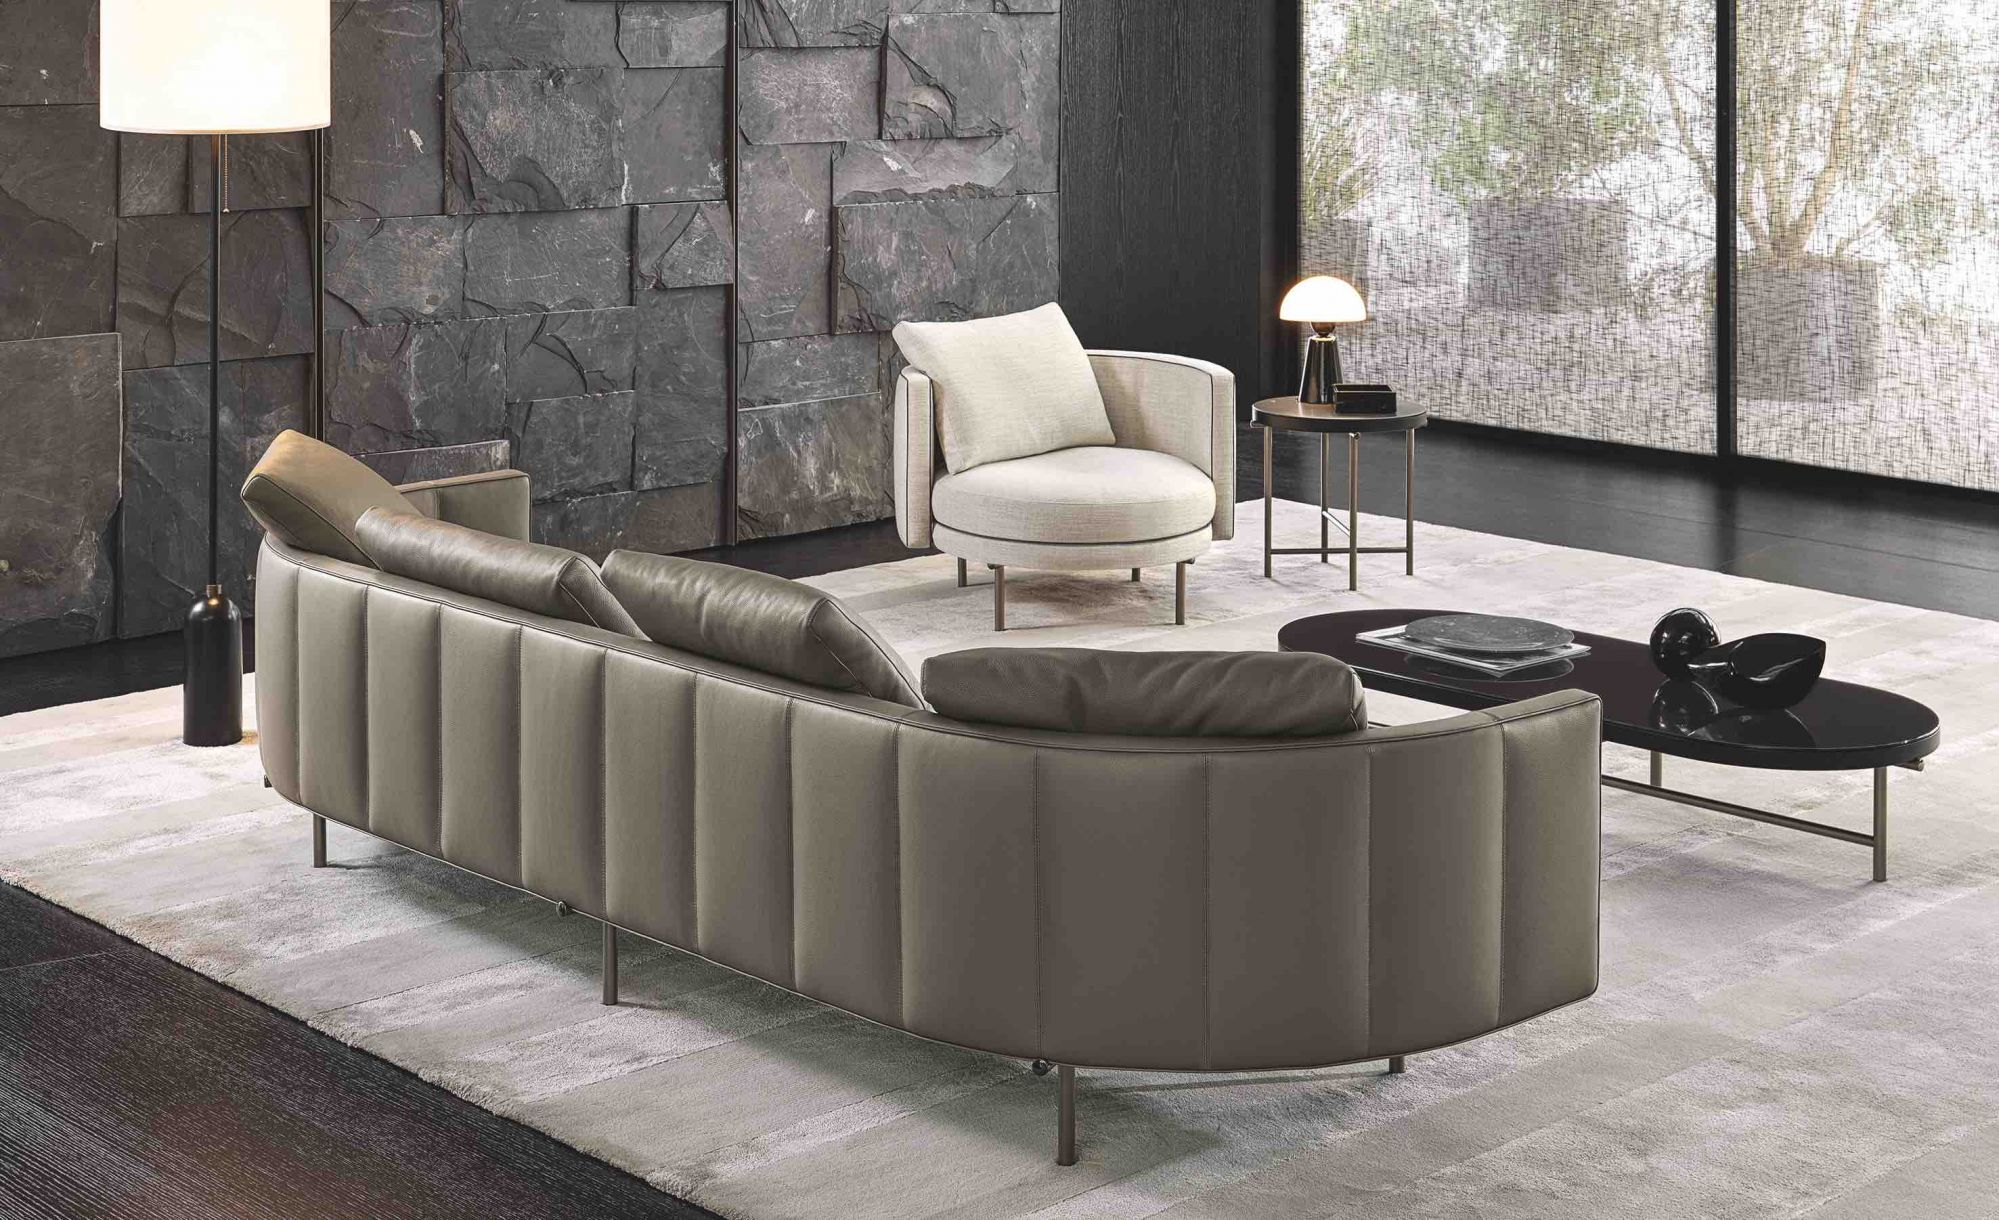 This New Minotti Collection Designed by Oki Sato is Perfect For Minimalists